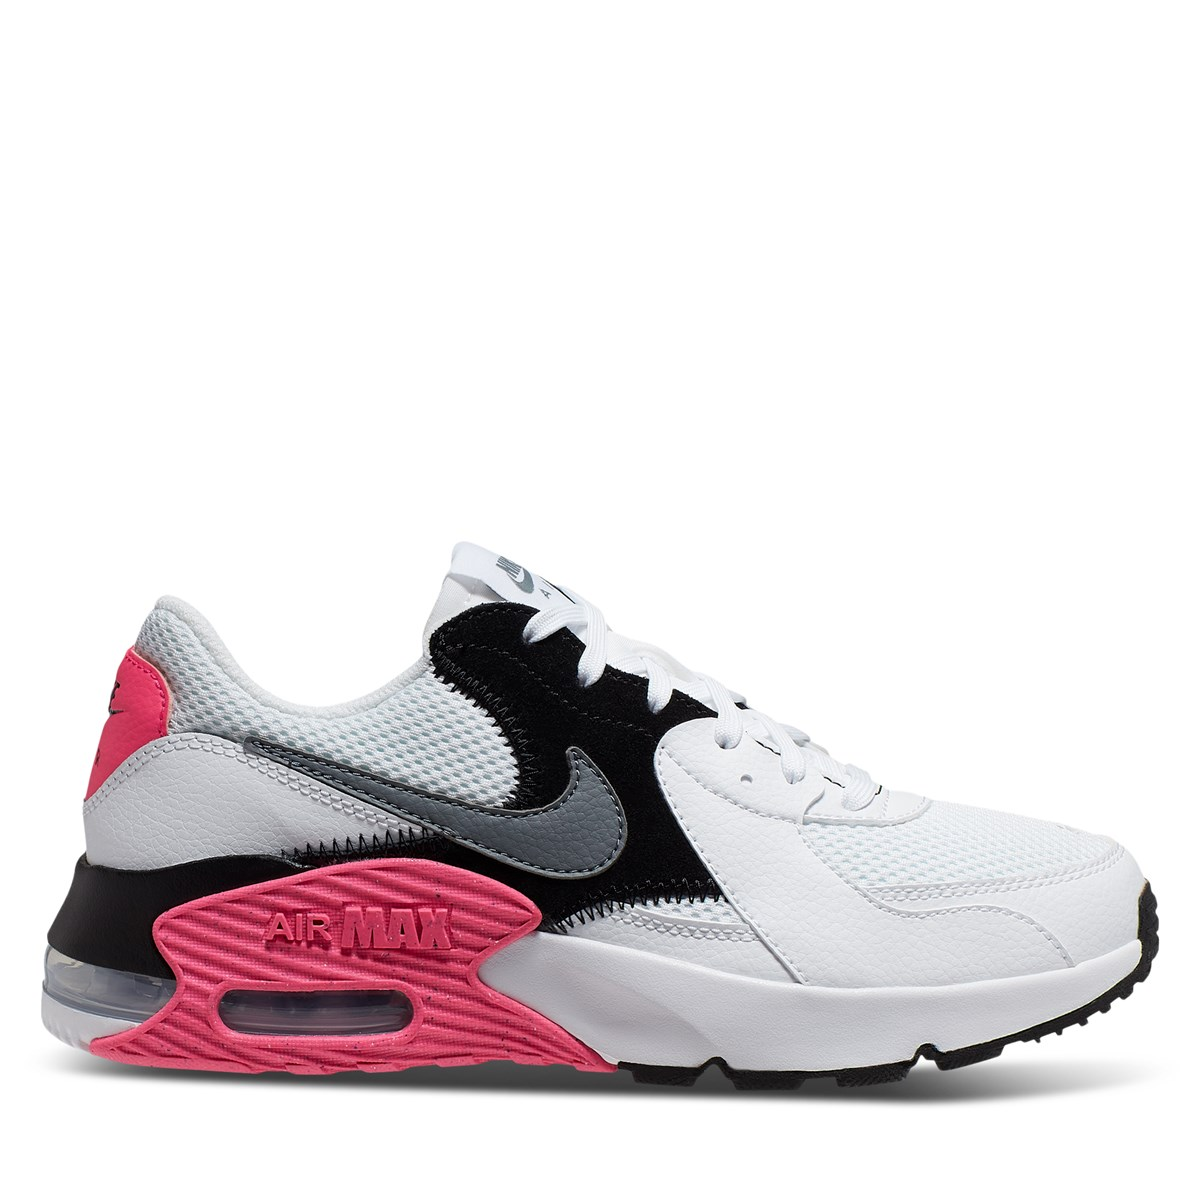 Women's Air Max Excee Sneakers in Light Grey